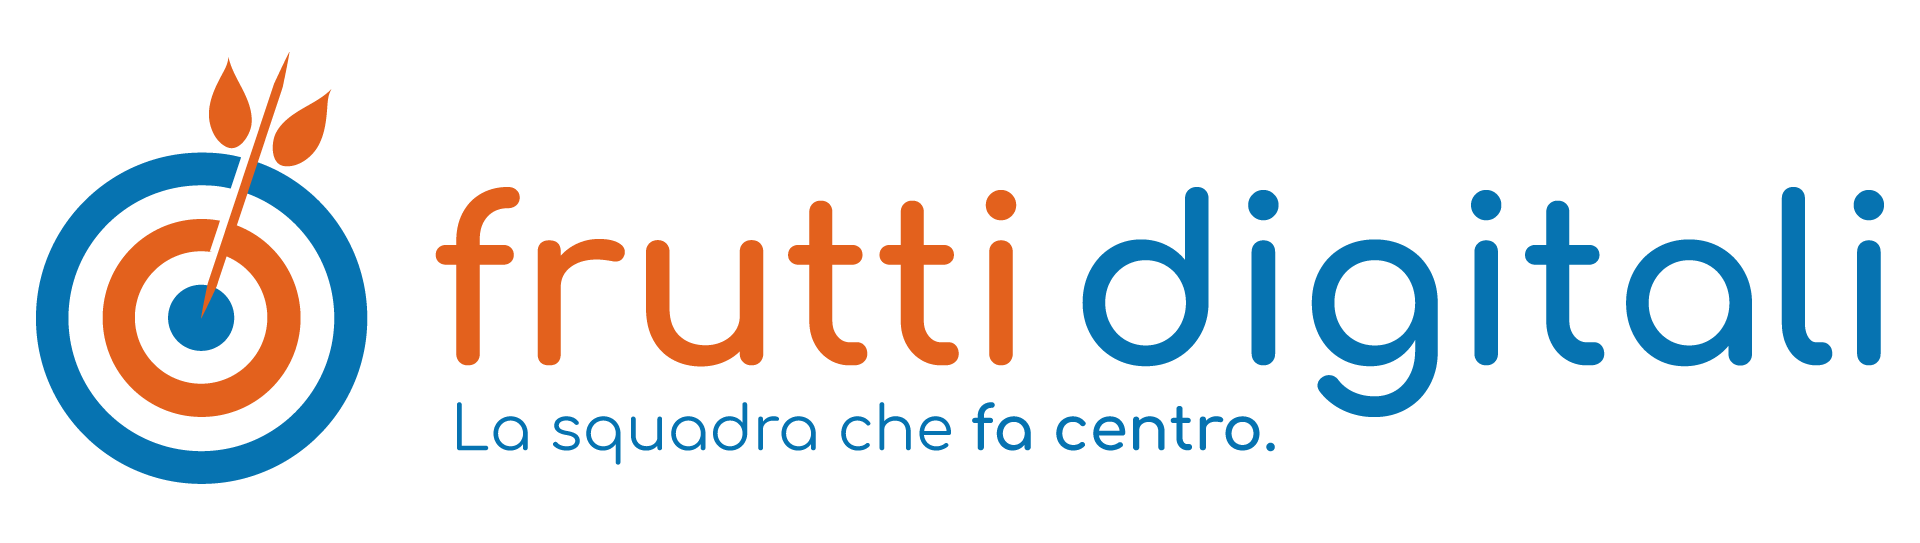 Frutti Digitali - Agenzia Web Marketing & SEO